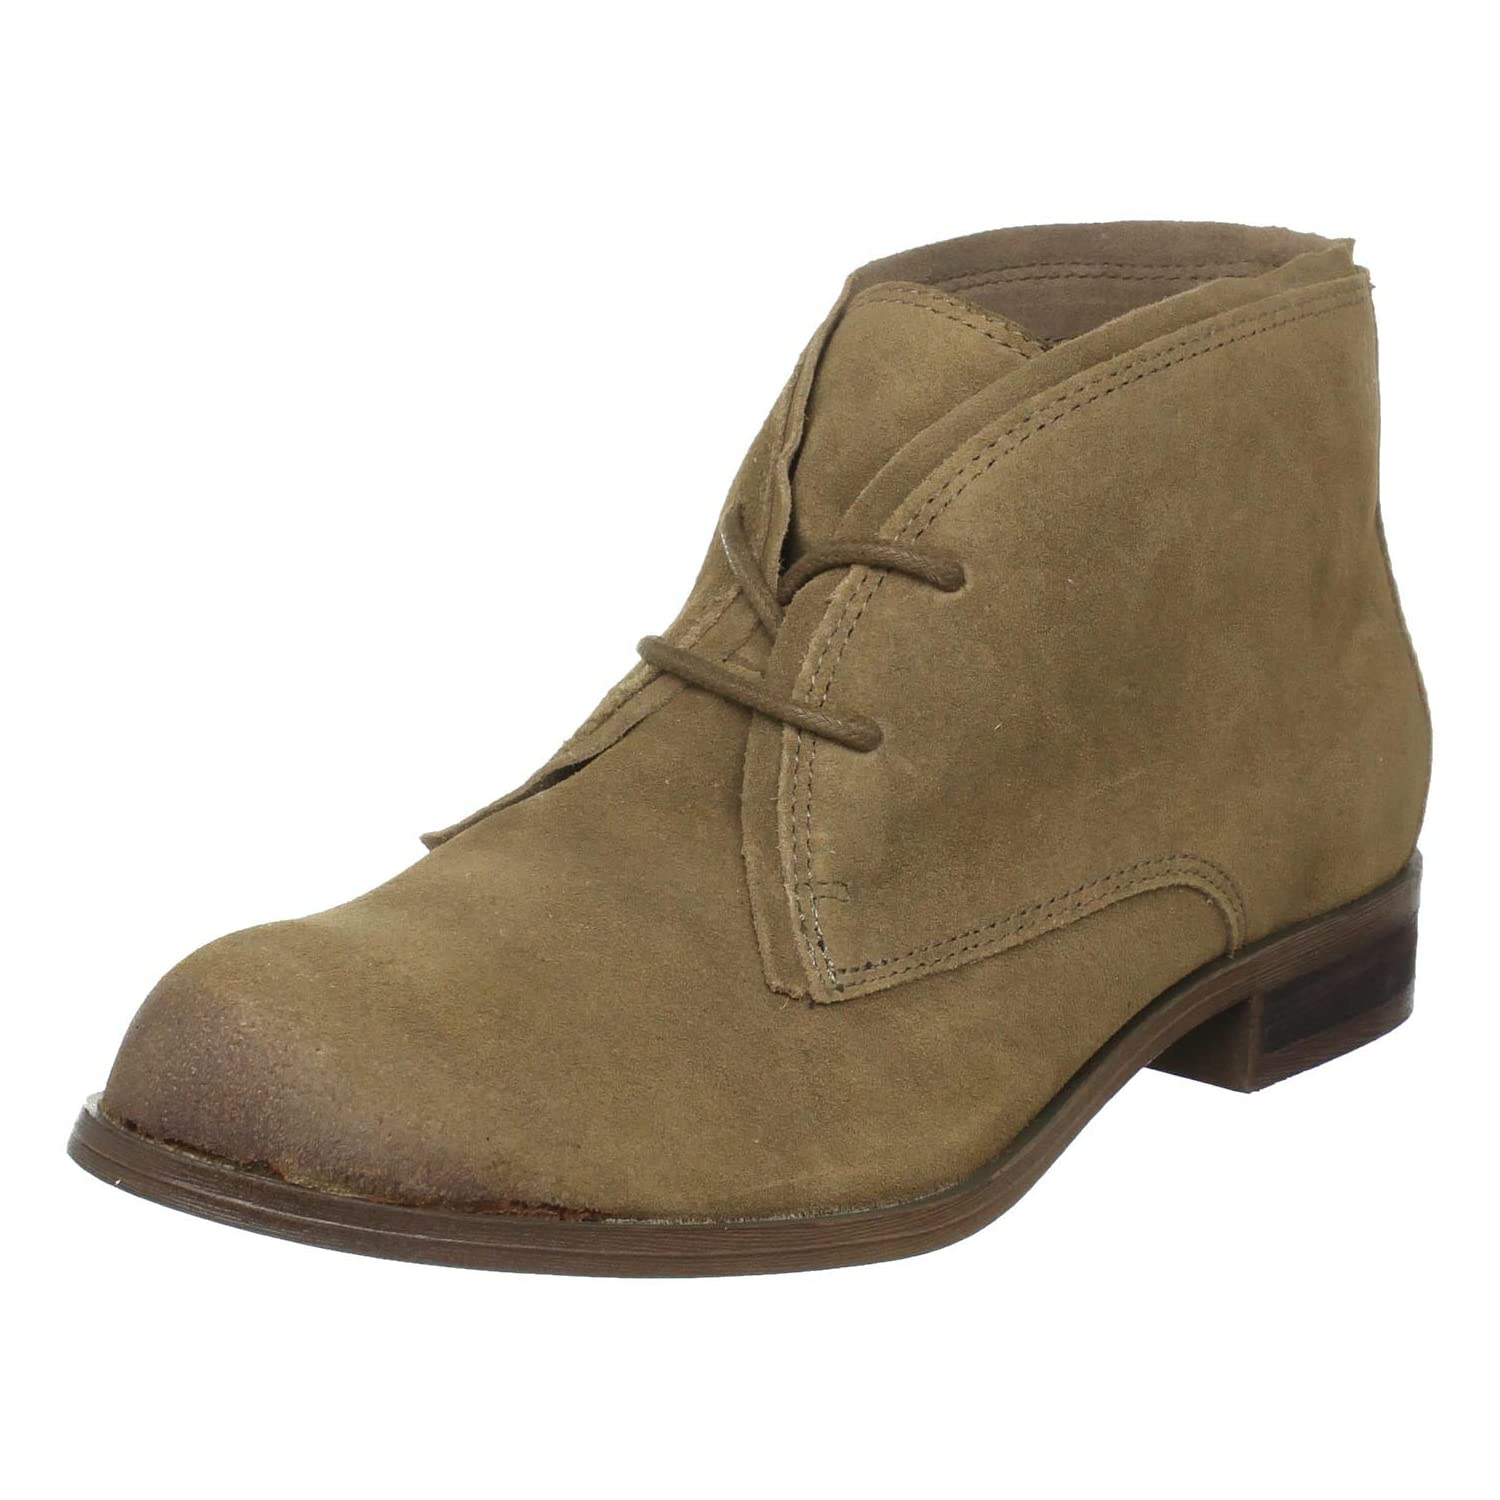 Rebecca Likes Online Shopping: Suede desert boots